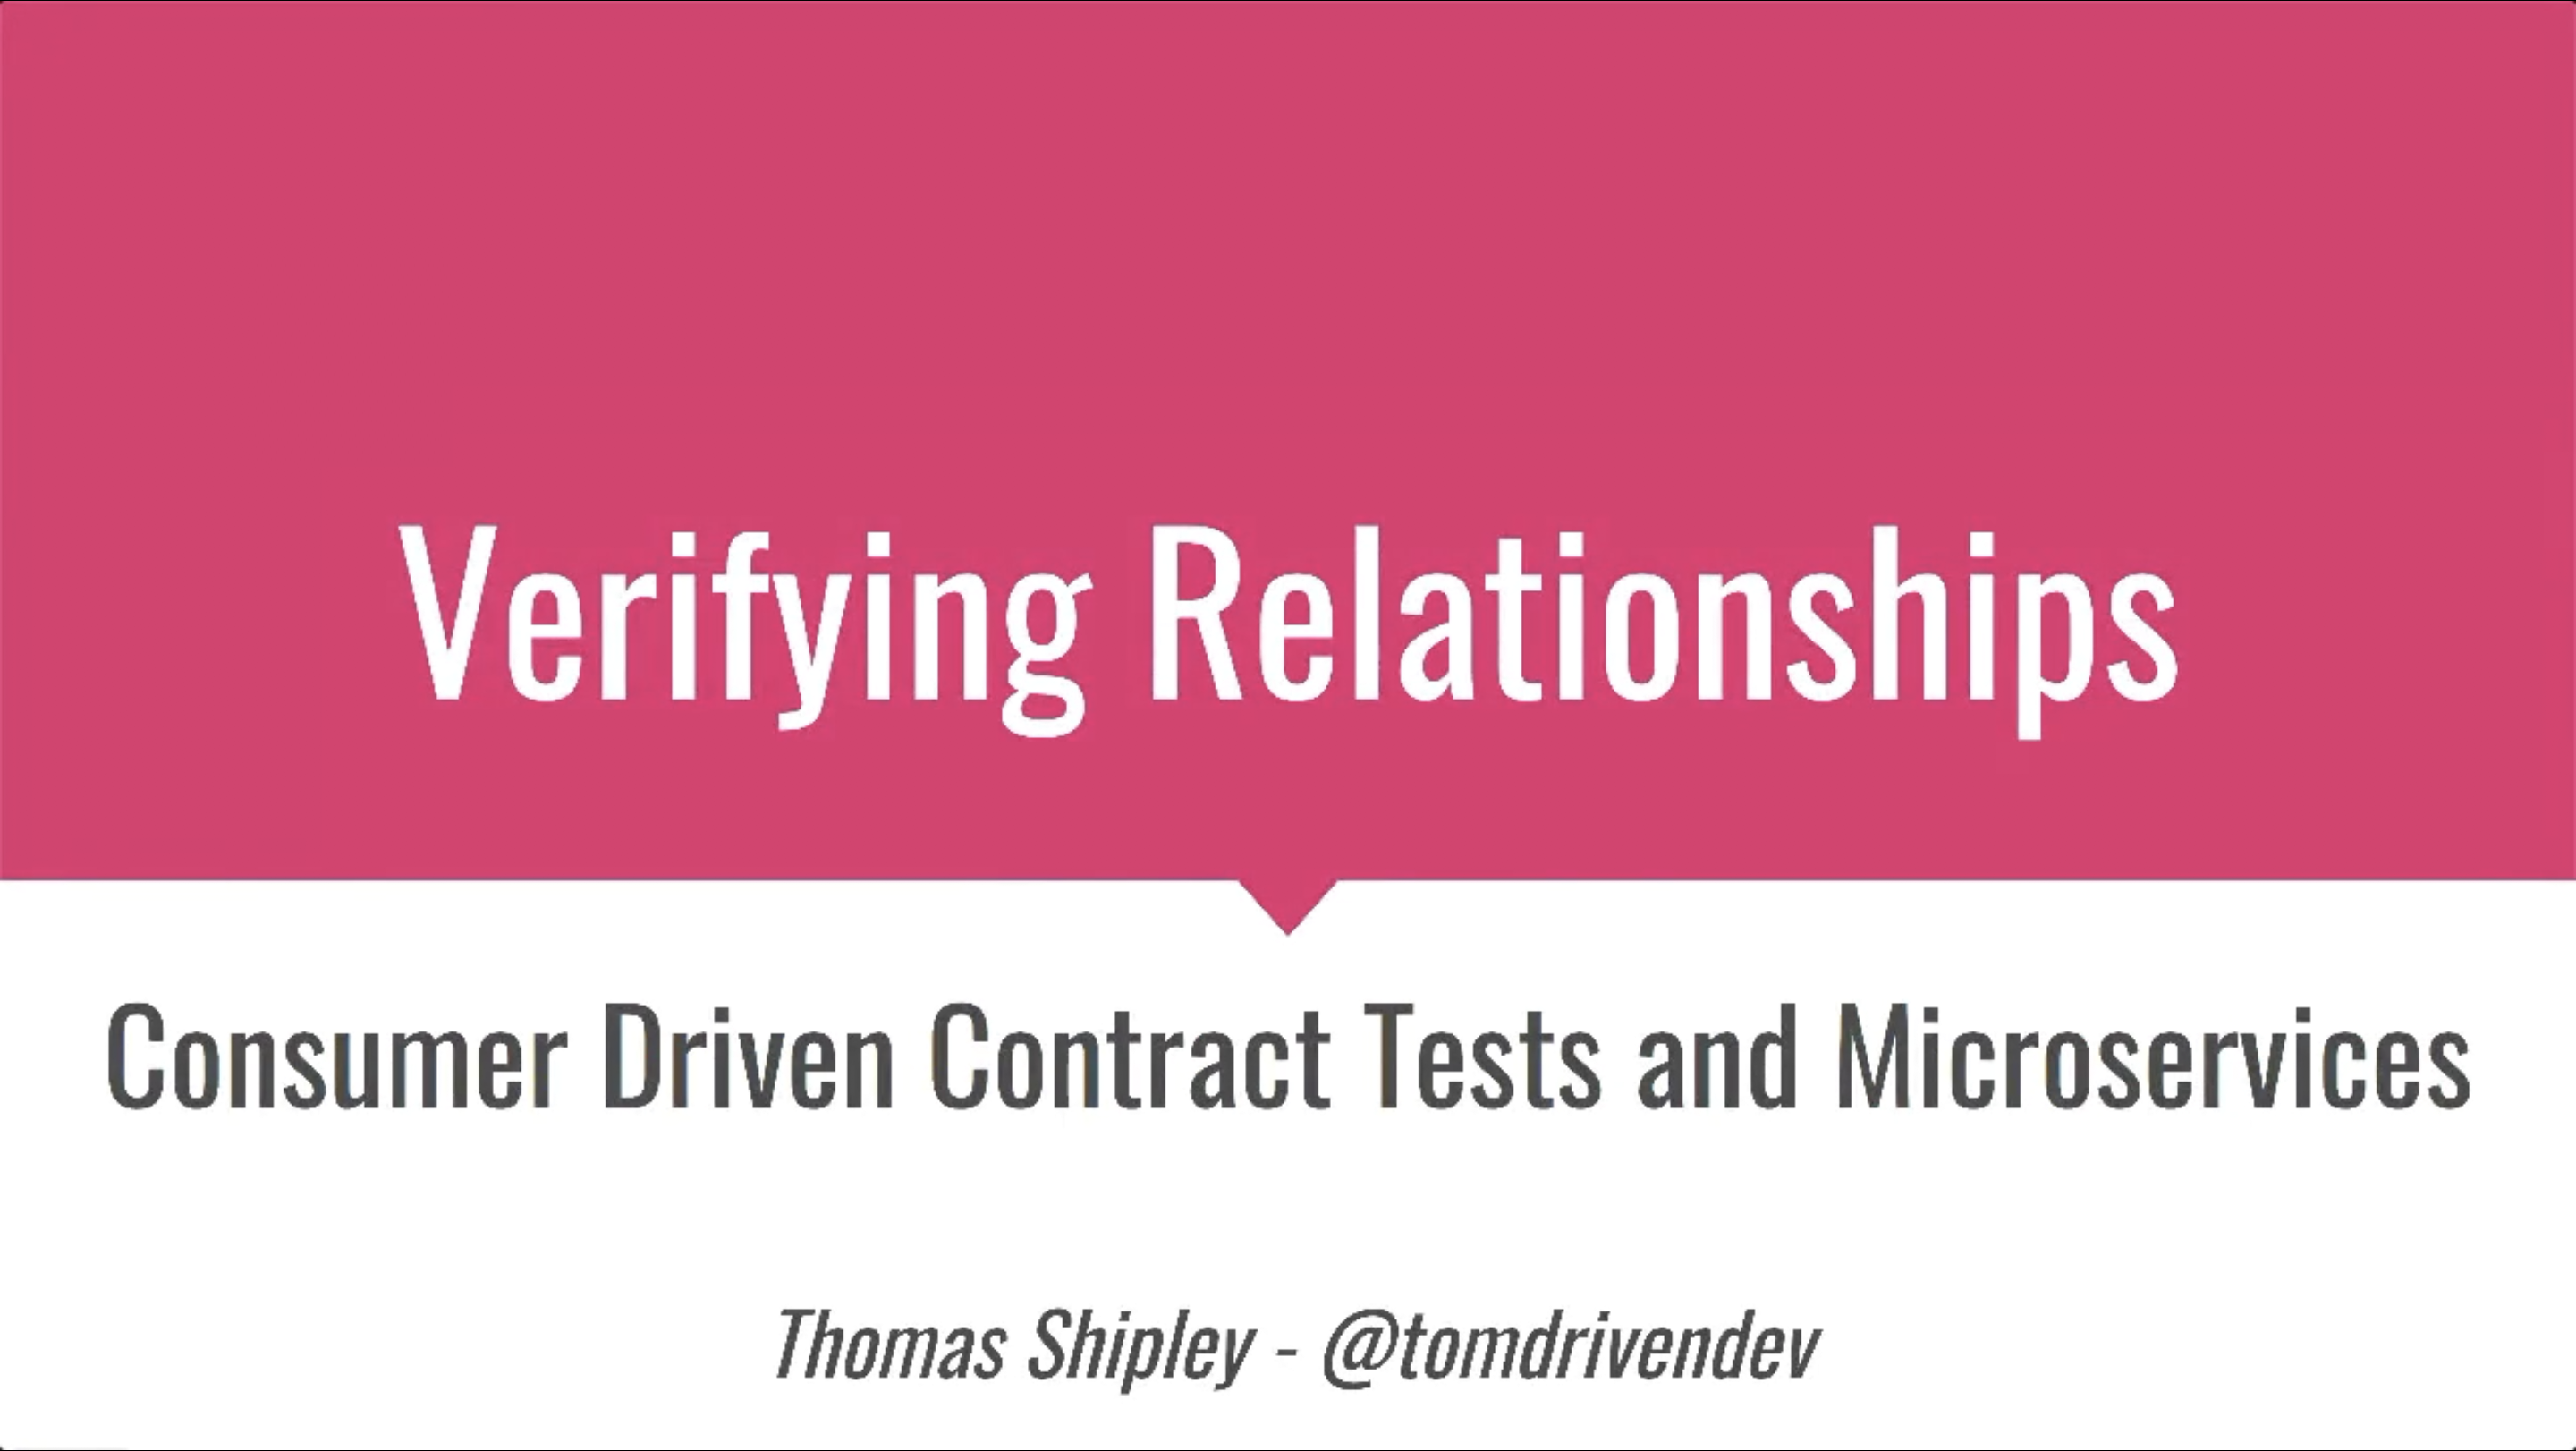 Verifying Relationships: Consumer-Driven Contract Tests and Microservices